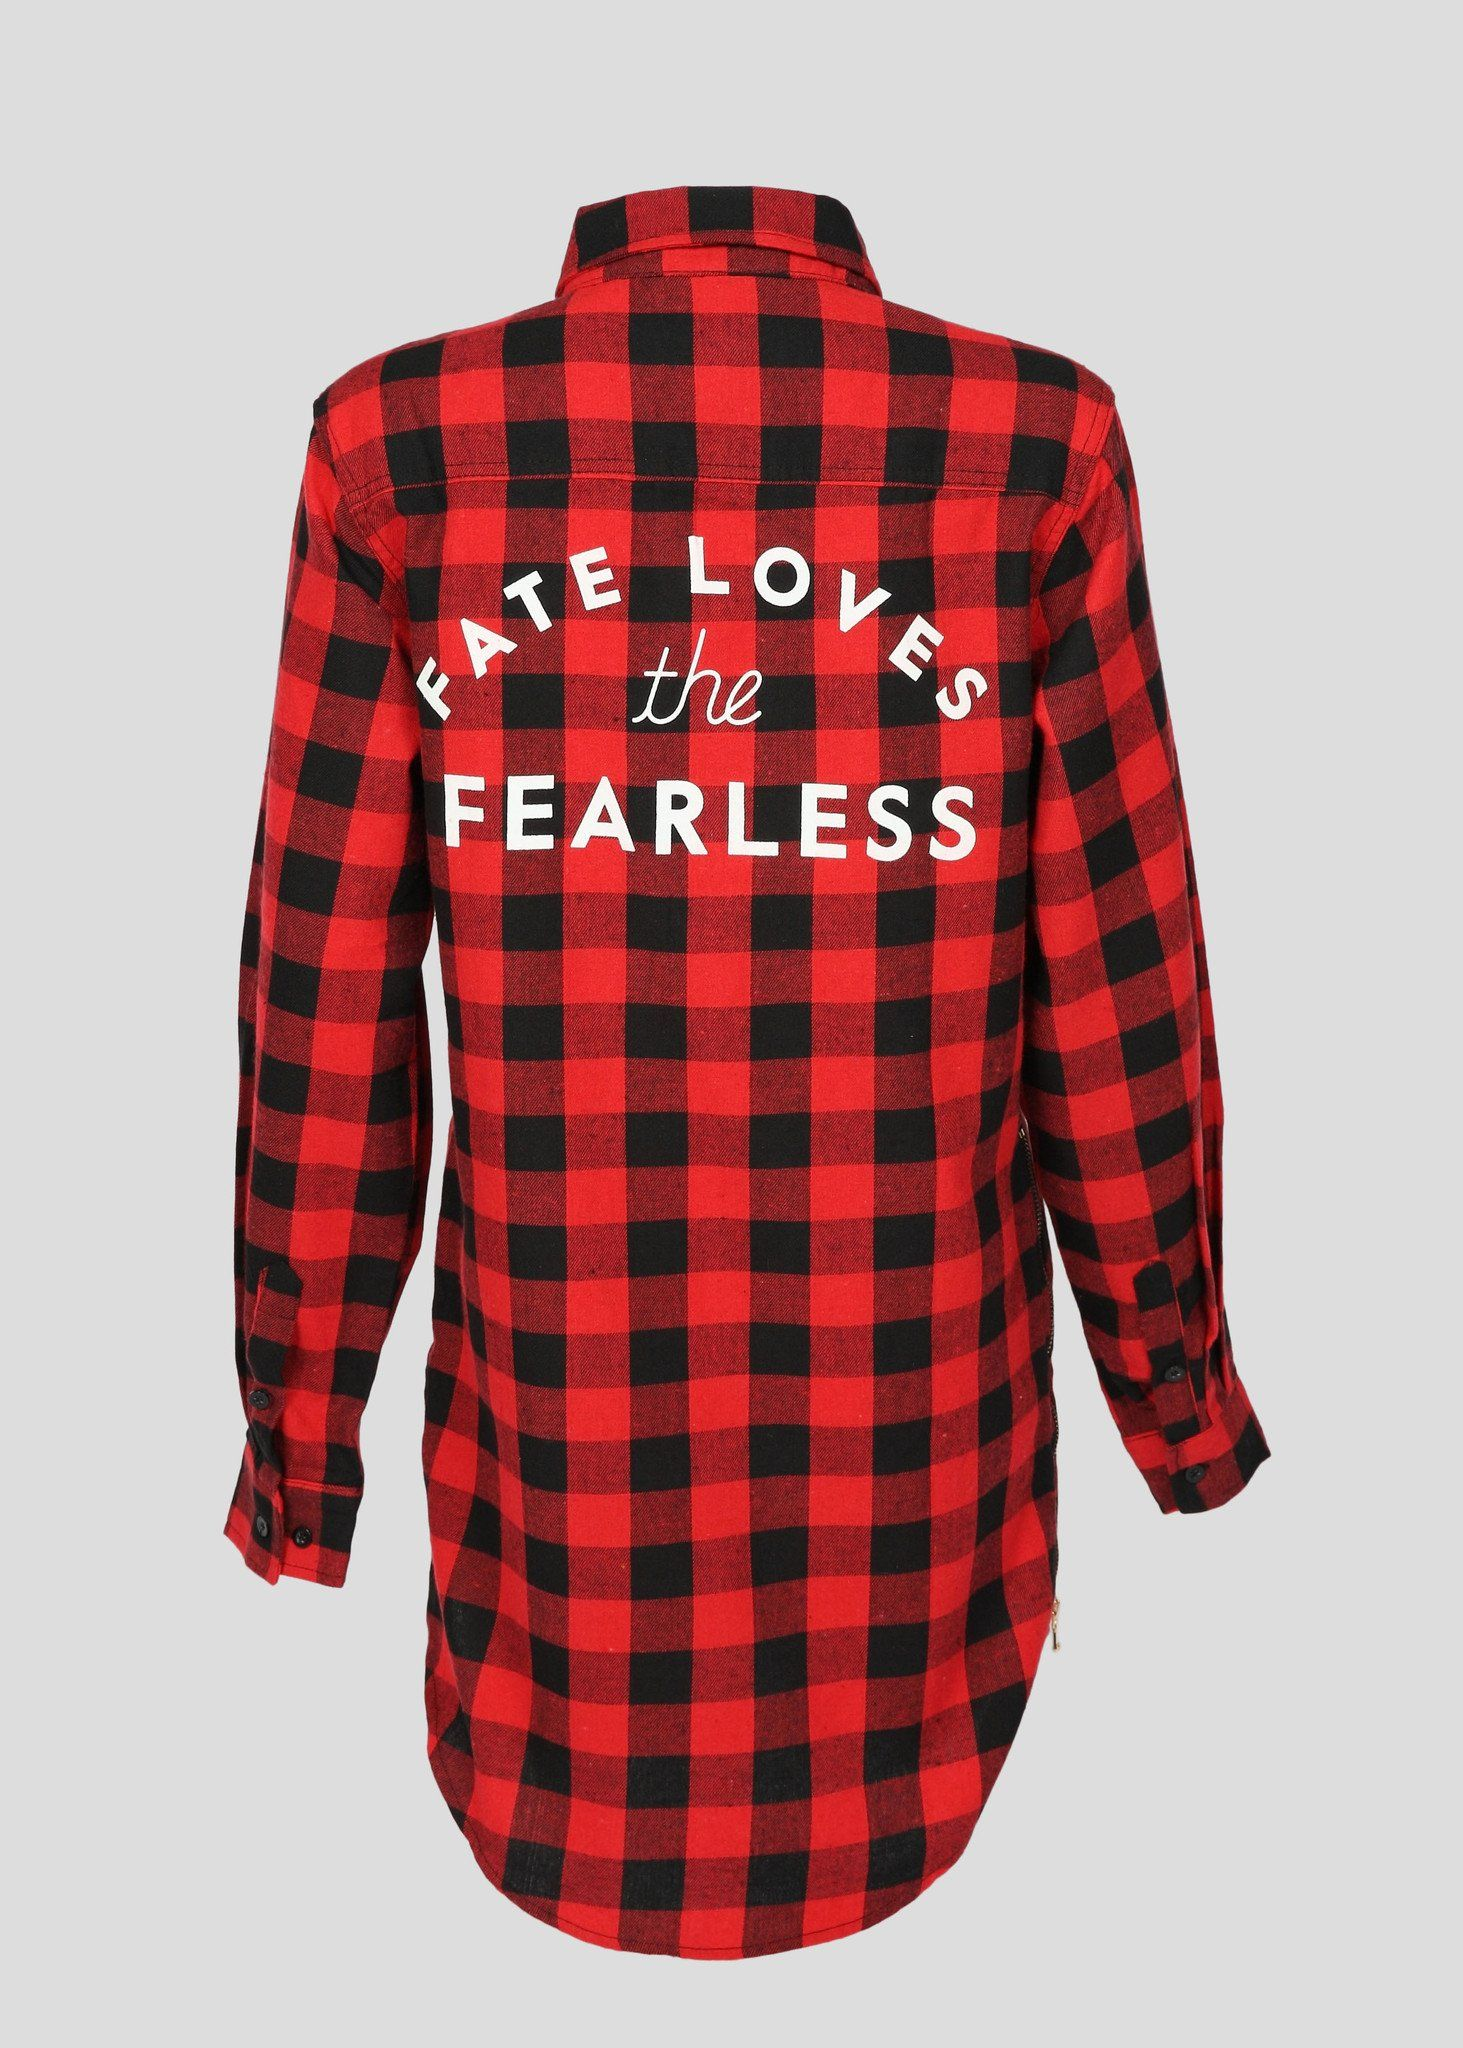 Flannel shirt and leggings  Fearless RedCheckered Flannel Shirt  Gear  Pinterest  Flannel